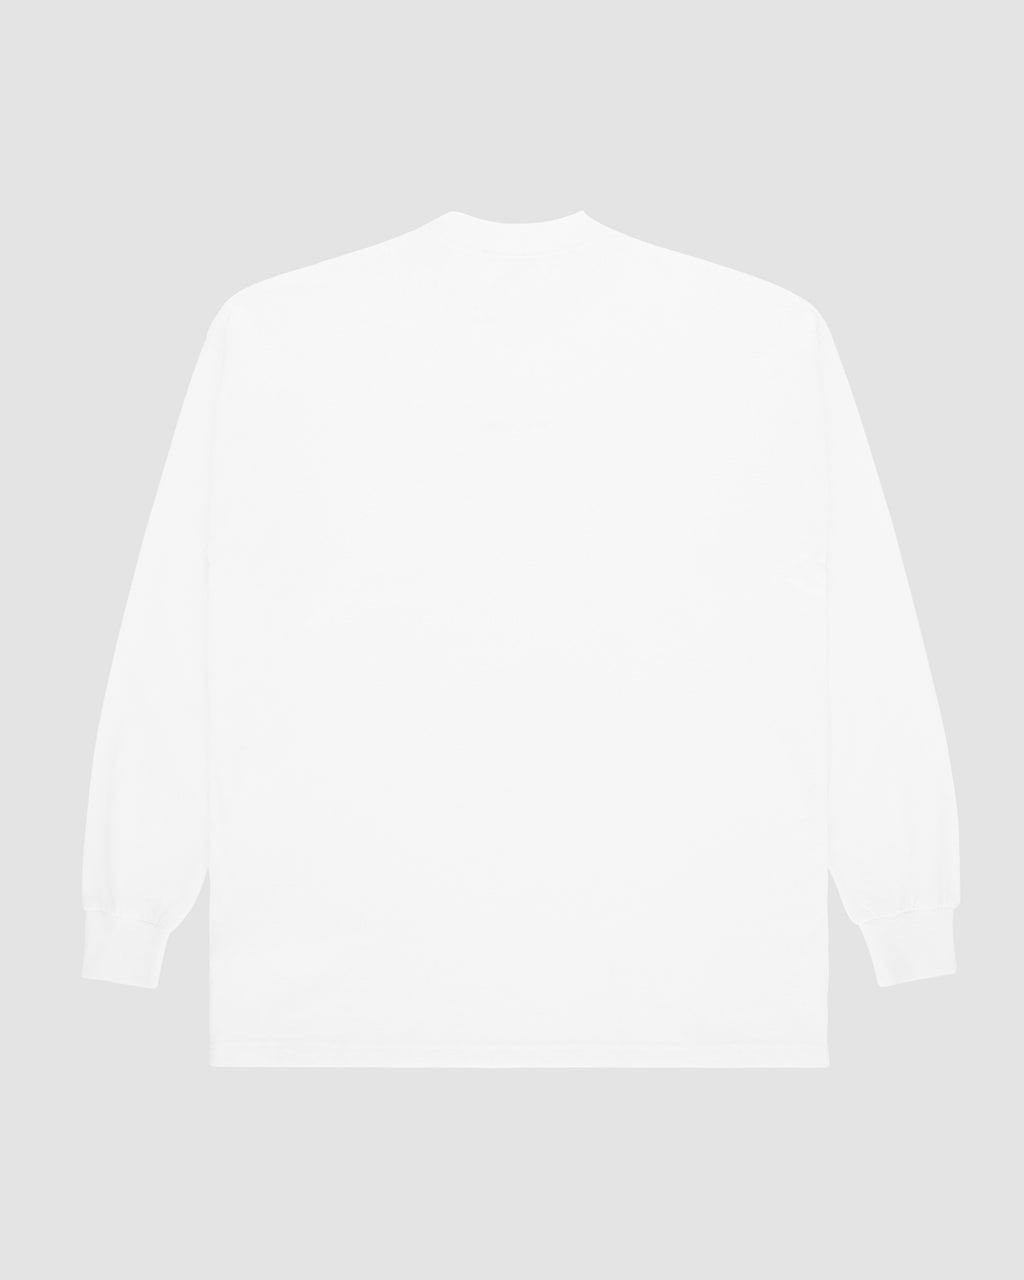 1017 ALYX 9SM | LOGO LS TEE | T-Shirt | F19, TESTINTEGRATION, Visual, White